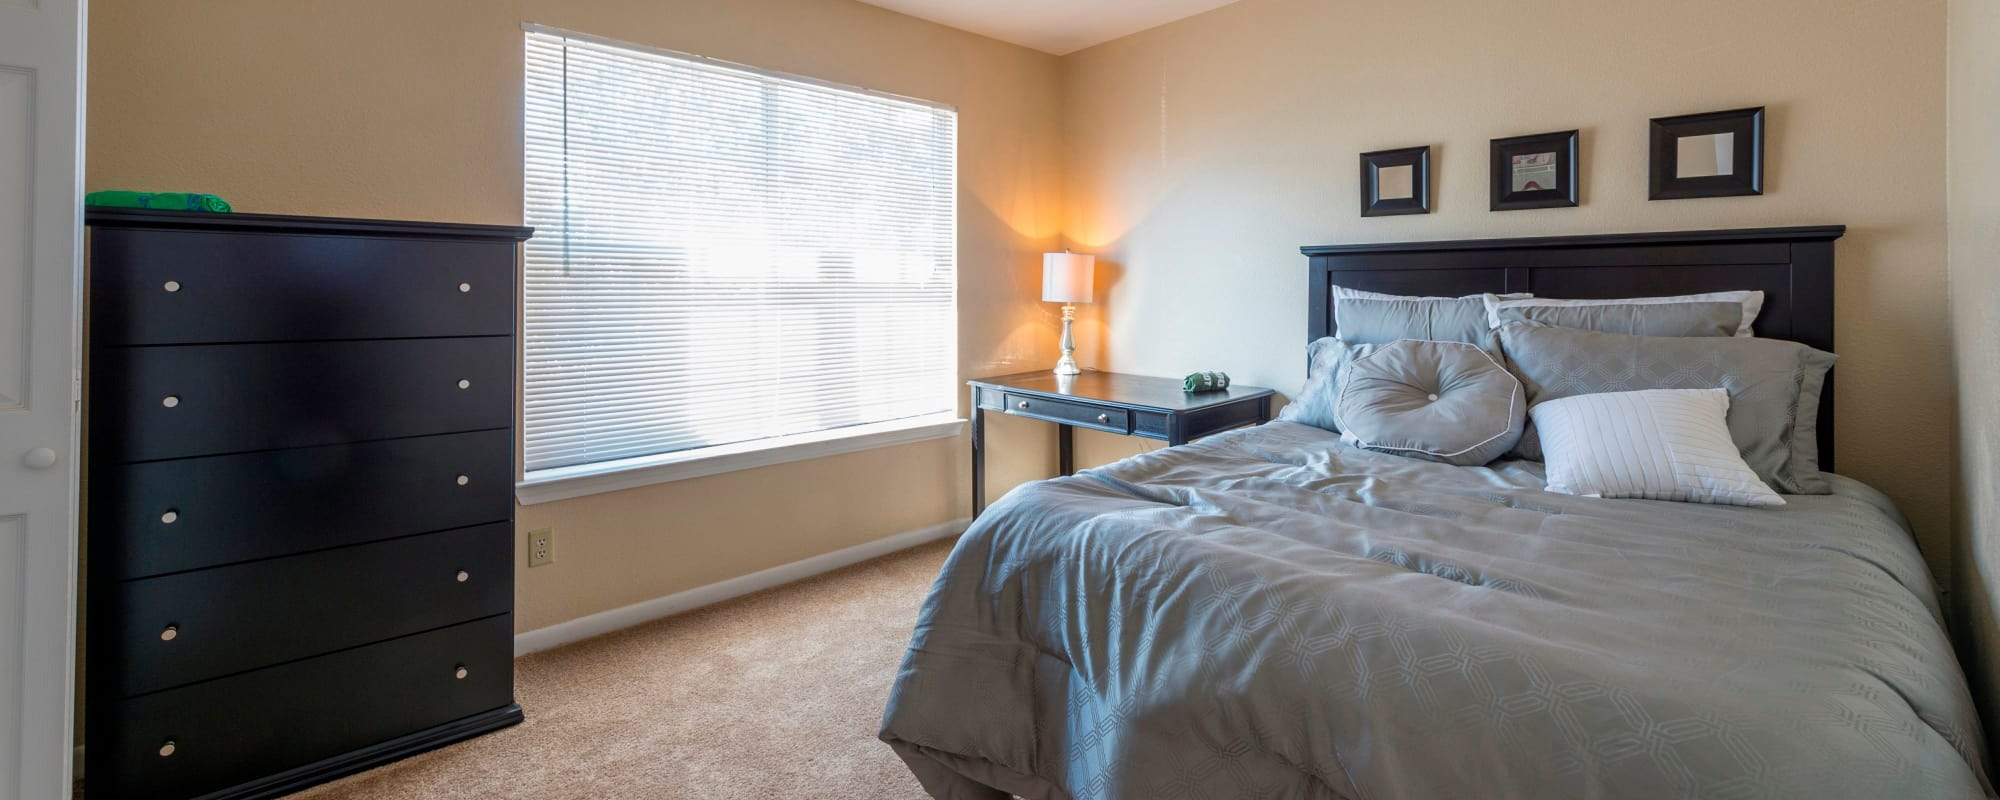 Beautiful bedroom at Parcside in College Station, Texas